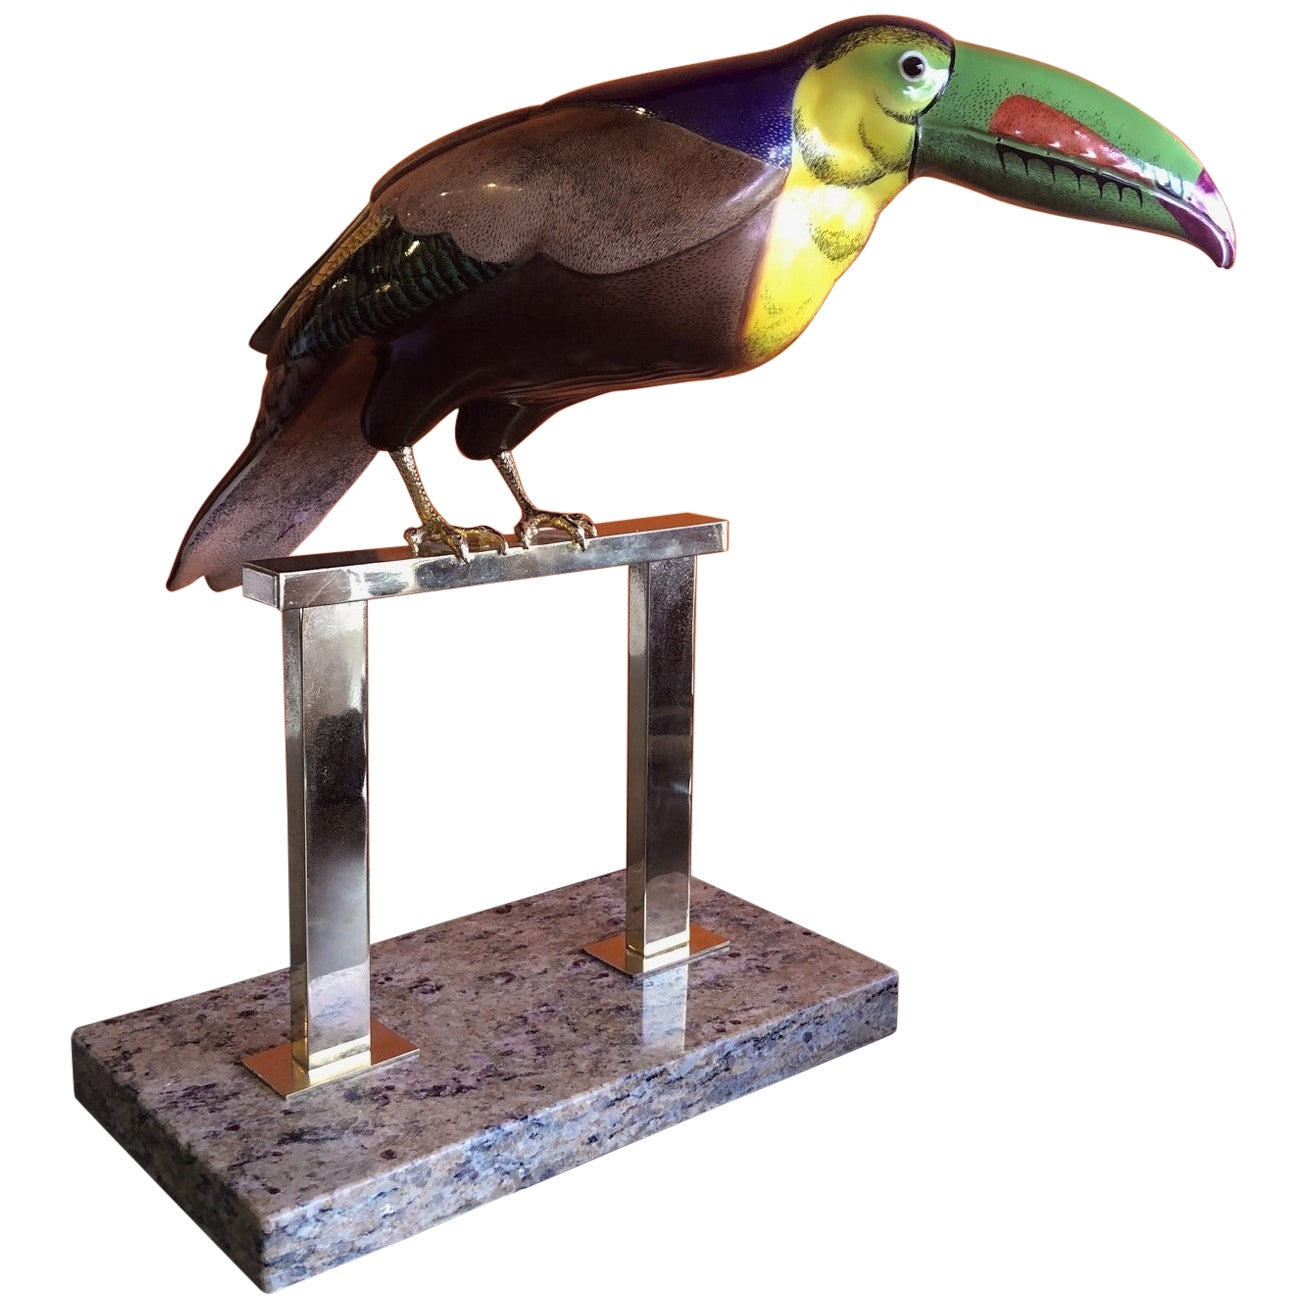 Hand Painted Stylized Toucan Sculpture by Giulia Mangani for Oggetti